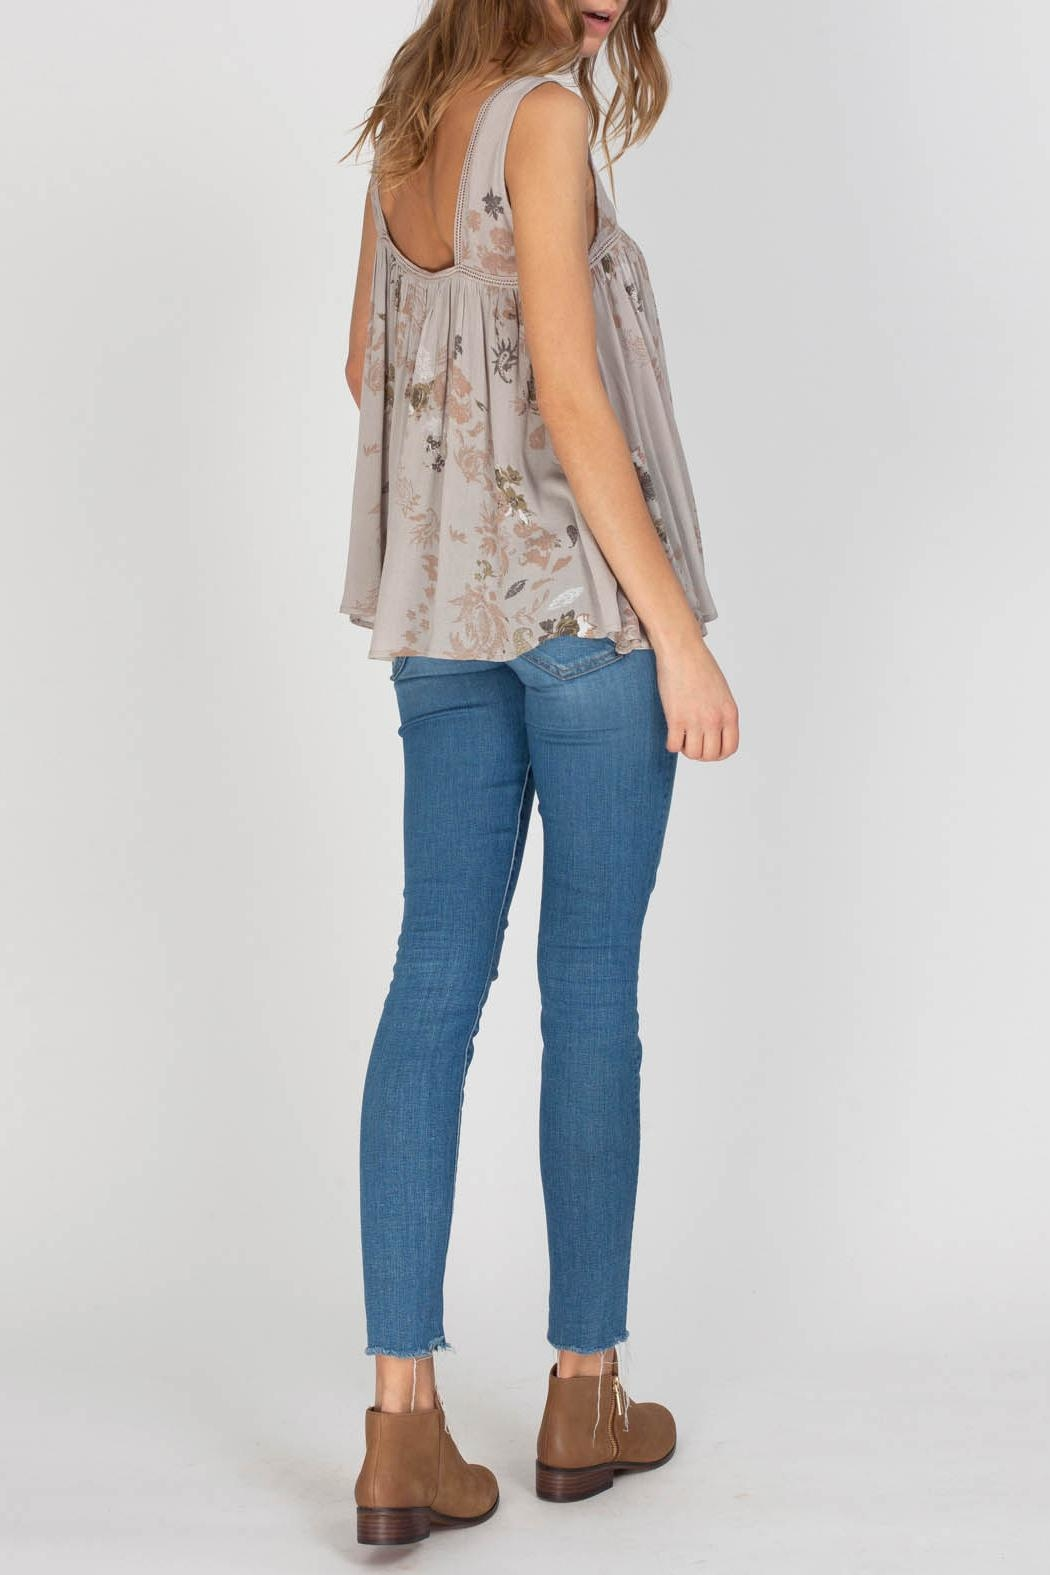 Gentle Fawn Indigo Top - Back Cropped Image